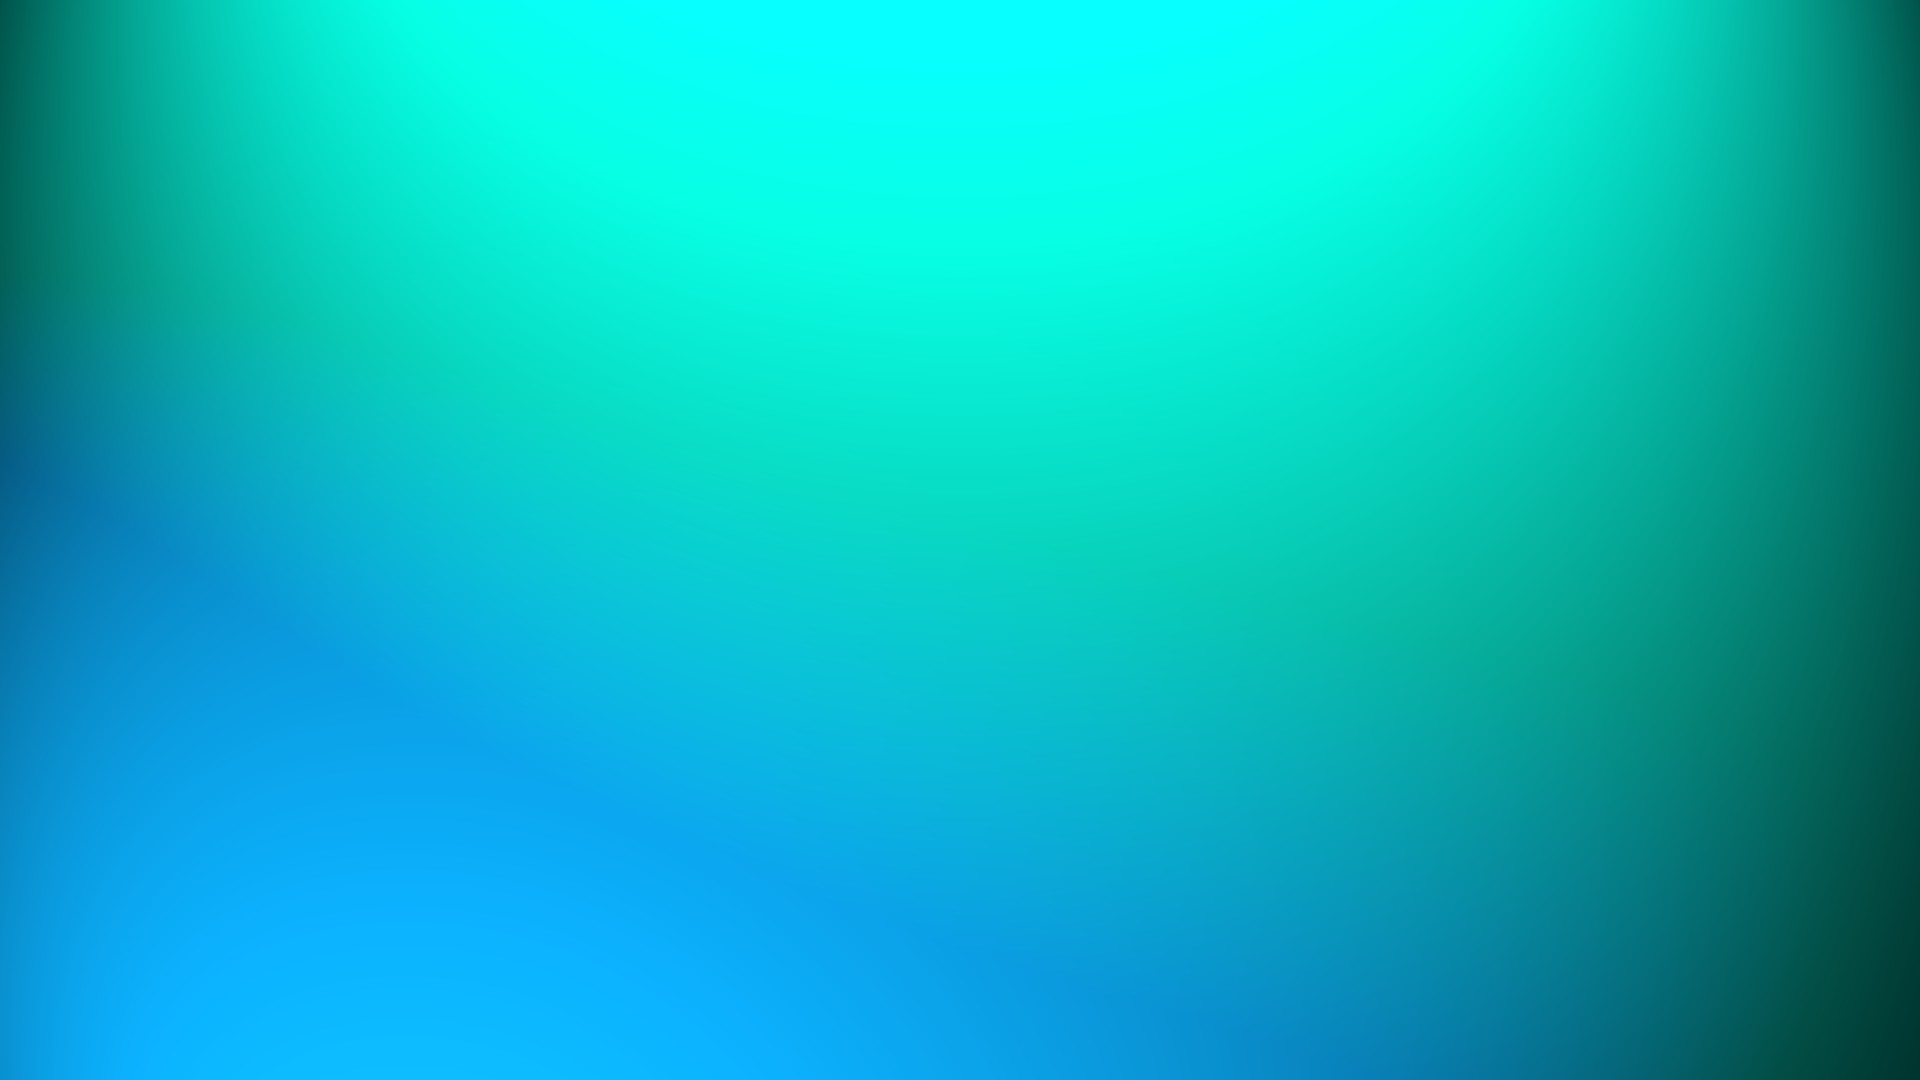 Simple IOS7 Wallpaper